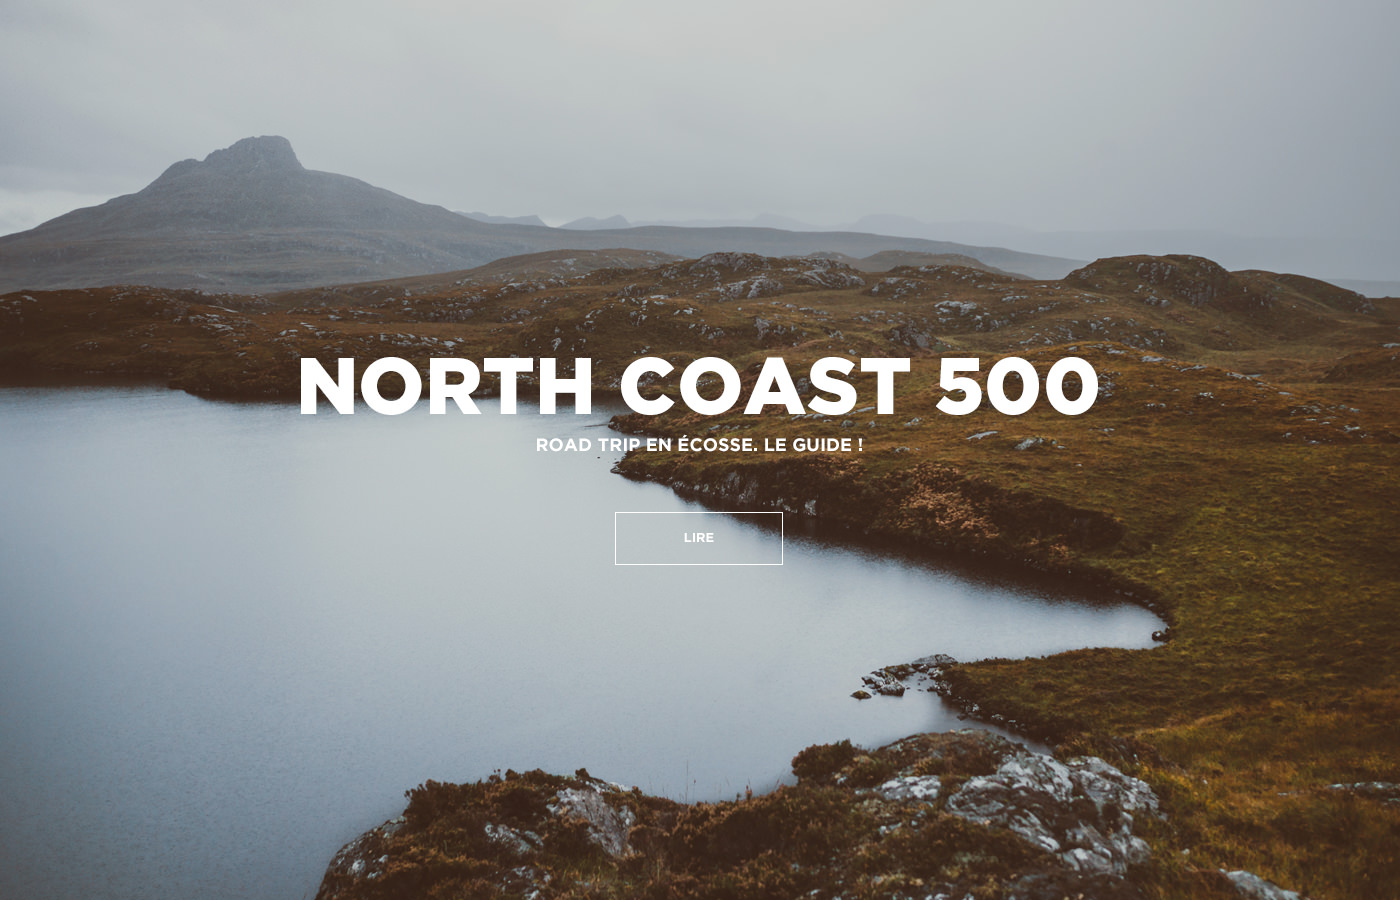 Road trip en Ecosse : North Coast 500, le guide !